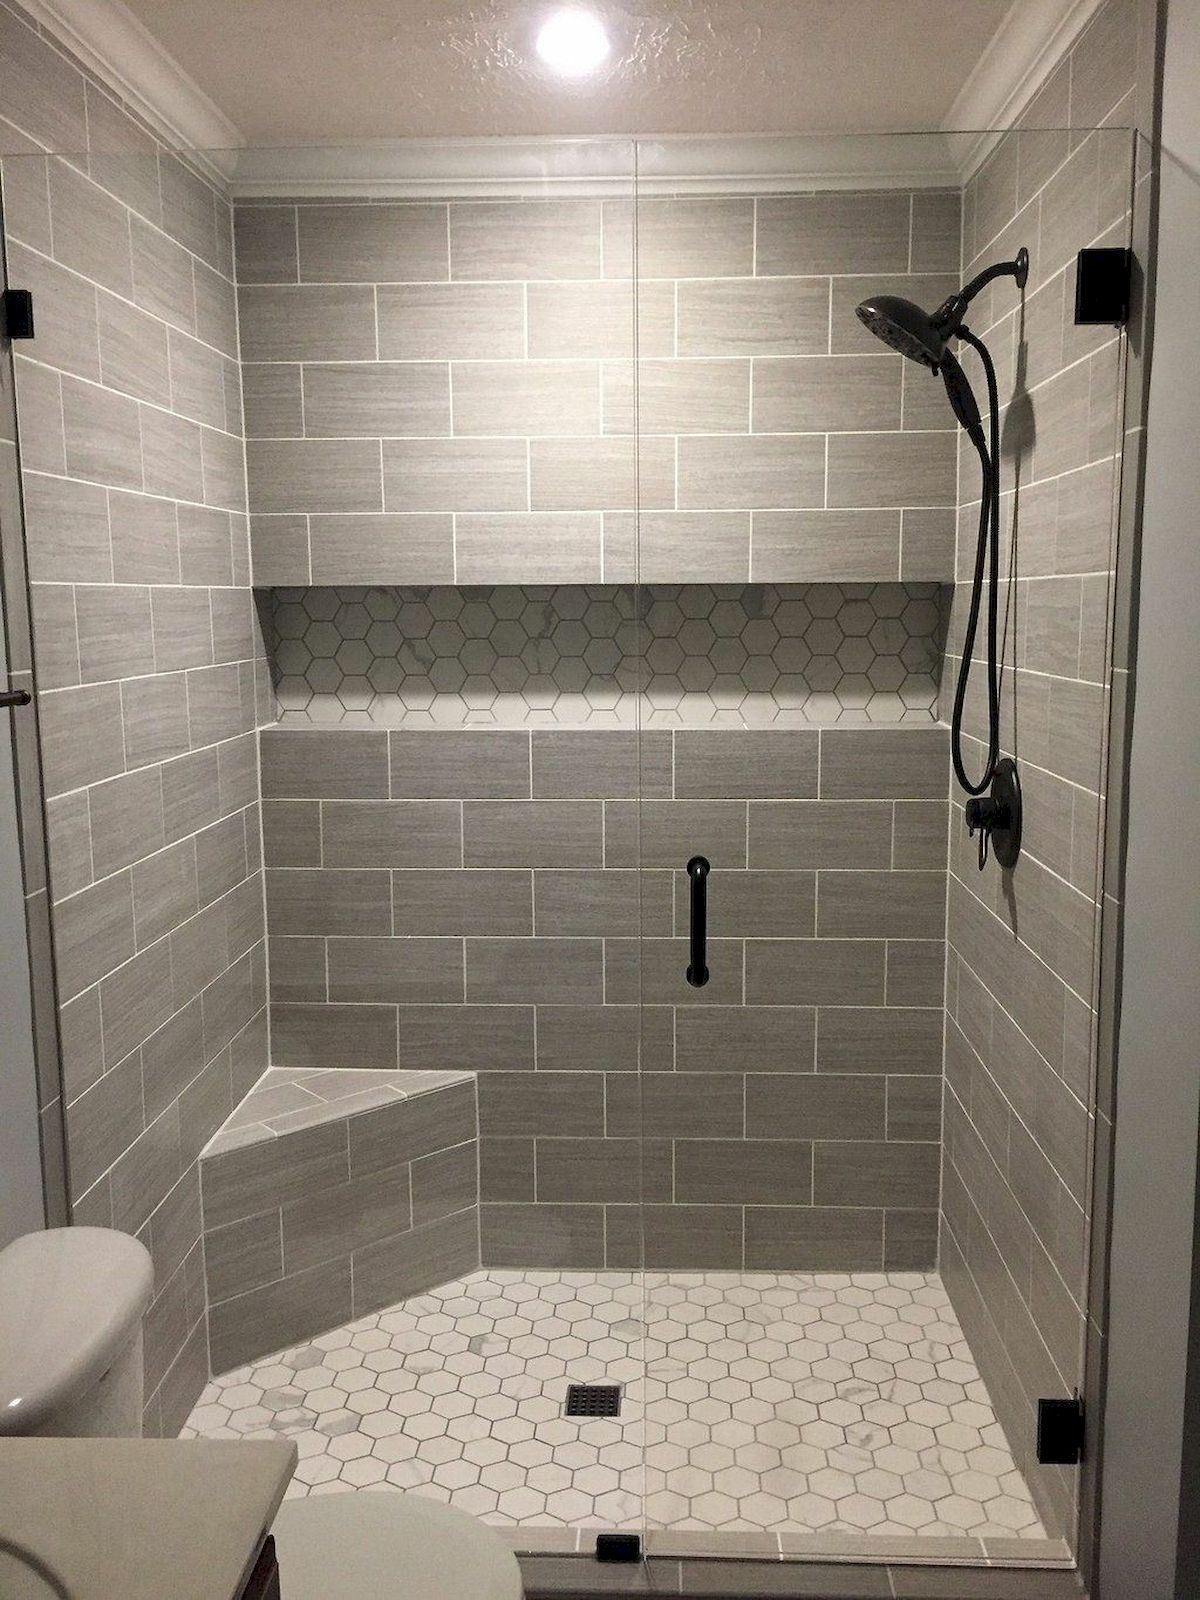 50 Cool Shower Design Ideas For Your Bathroom Bathrooms Remodel Small Bathroom Remodel Small Bathroom